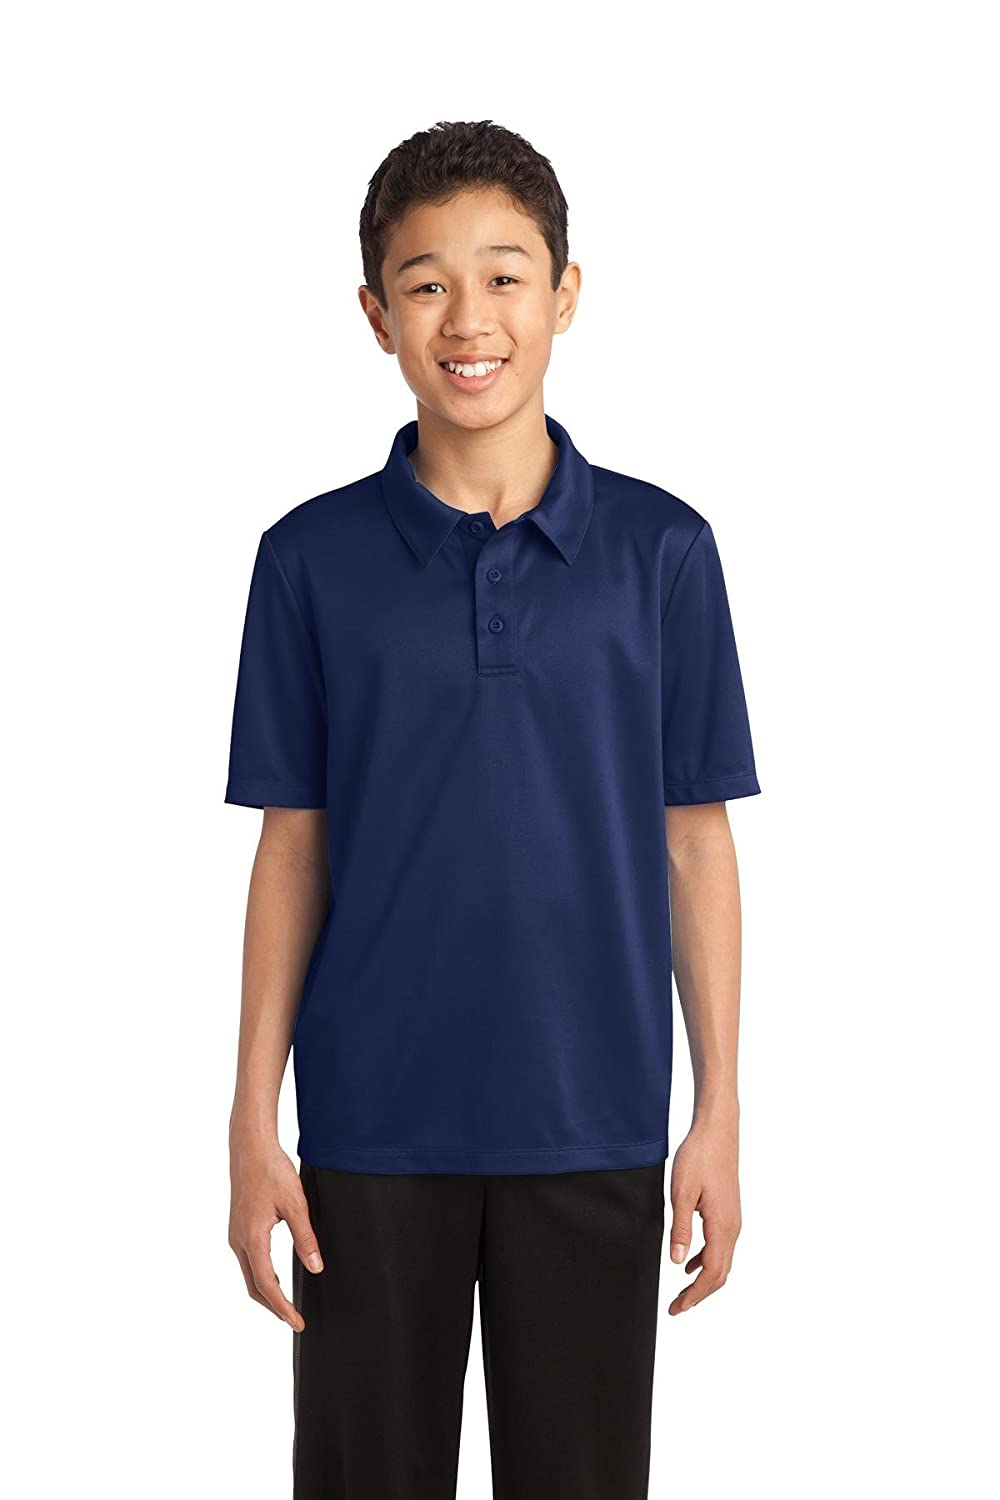 Port Authority Youth Silk Touch Performance Polo Y540 Navy M